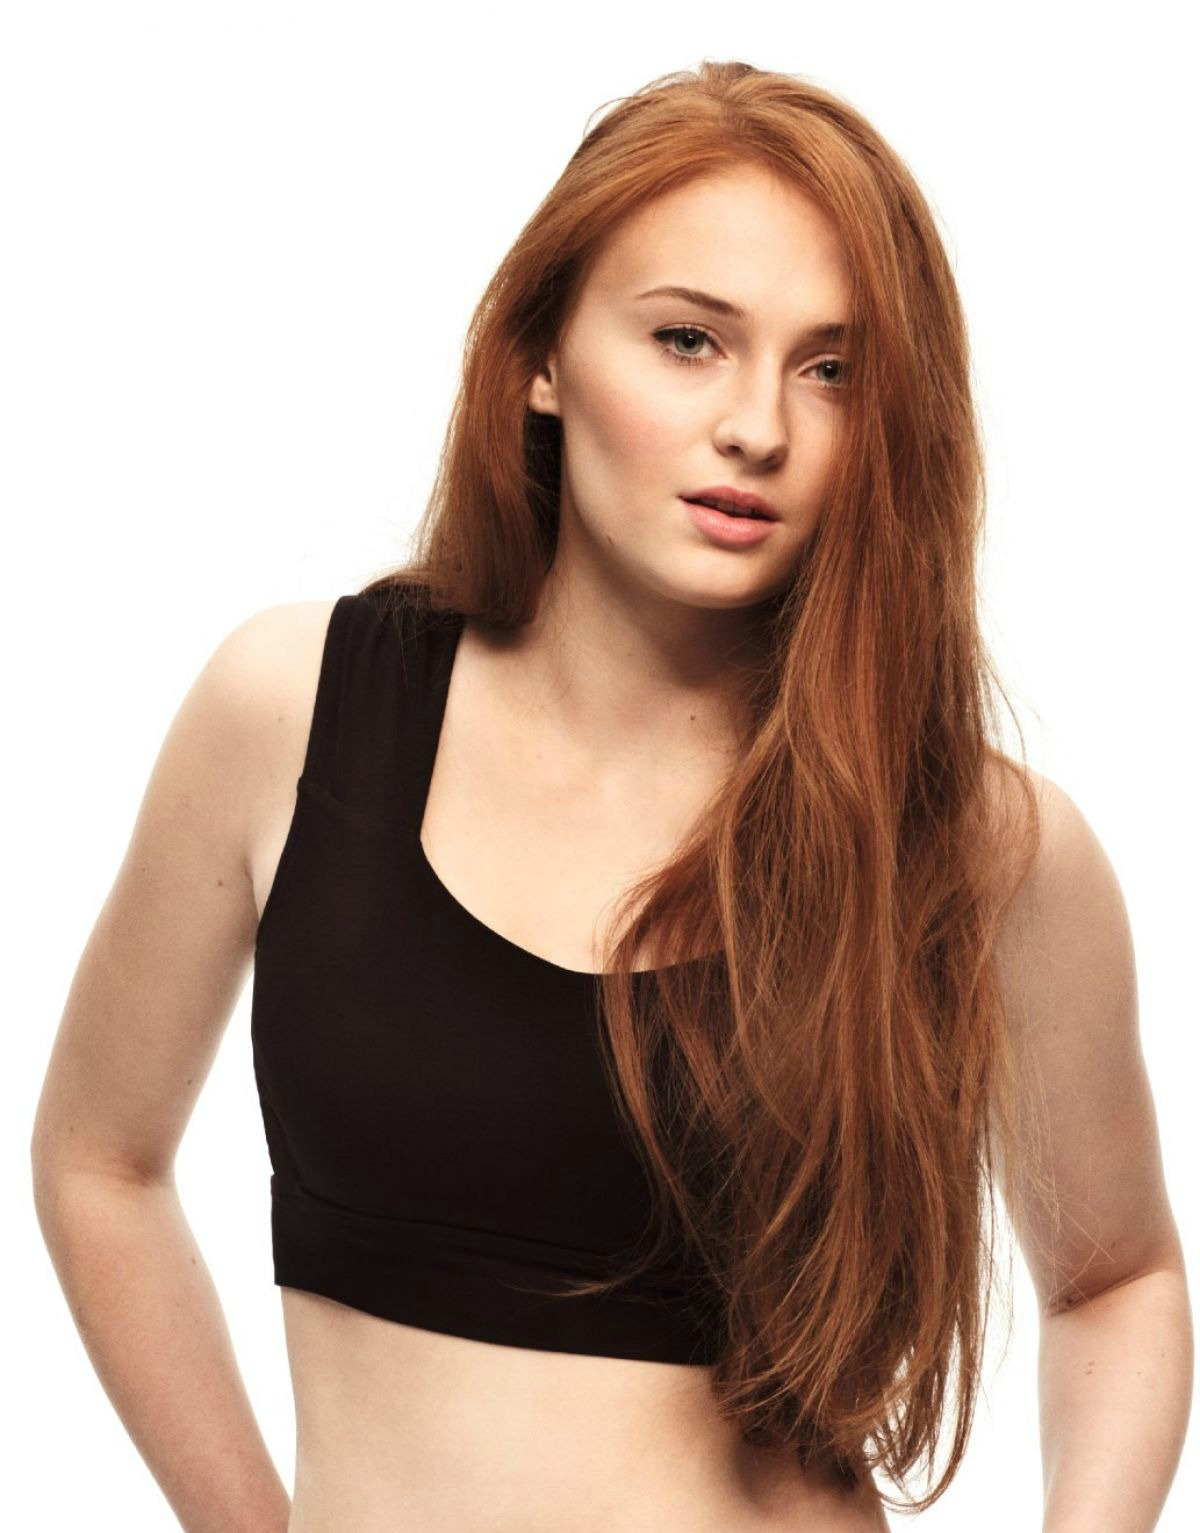 Sophie-turner-in-asos-magazine-october-2013-issue 11.jpg